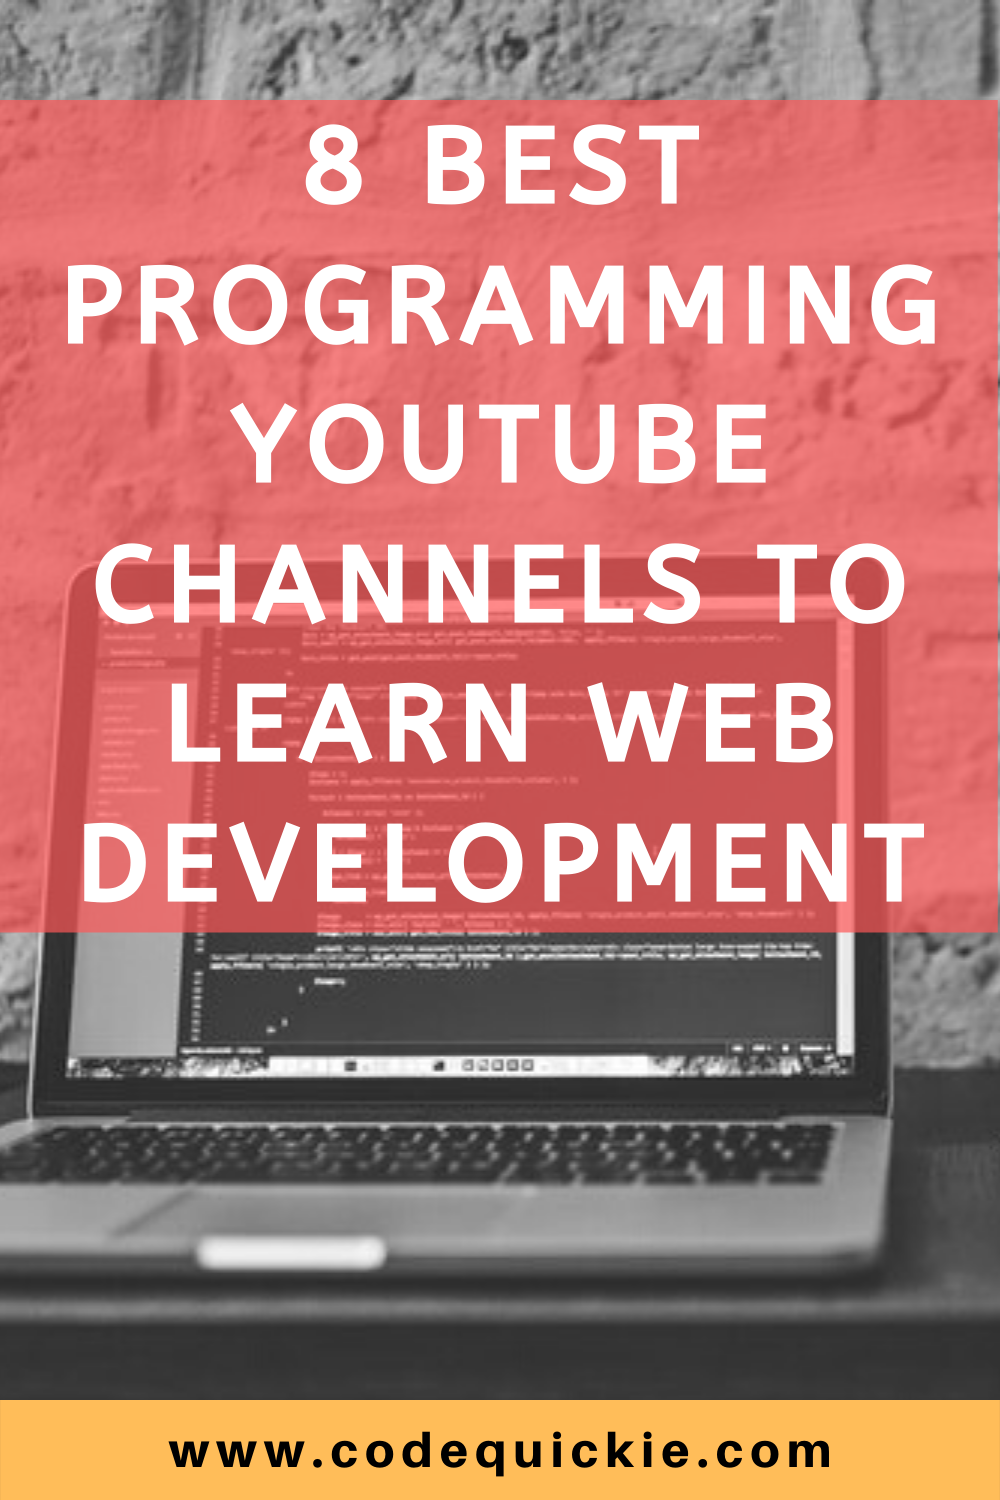 8 Best Programming YouTube Channels To Learn Web Development - Codequickie